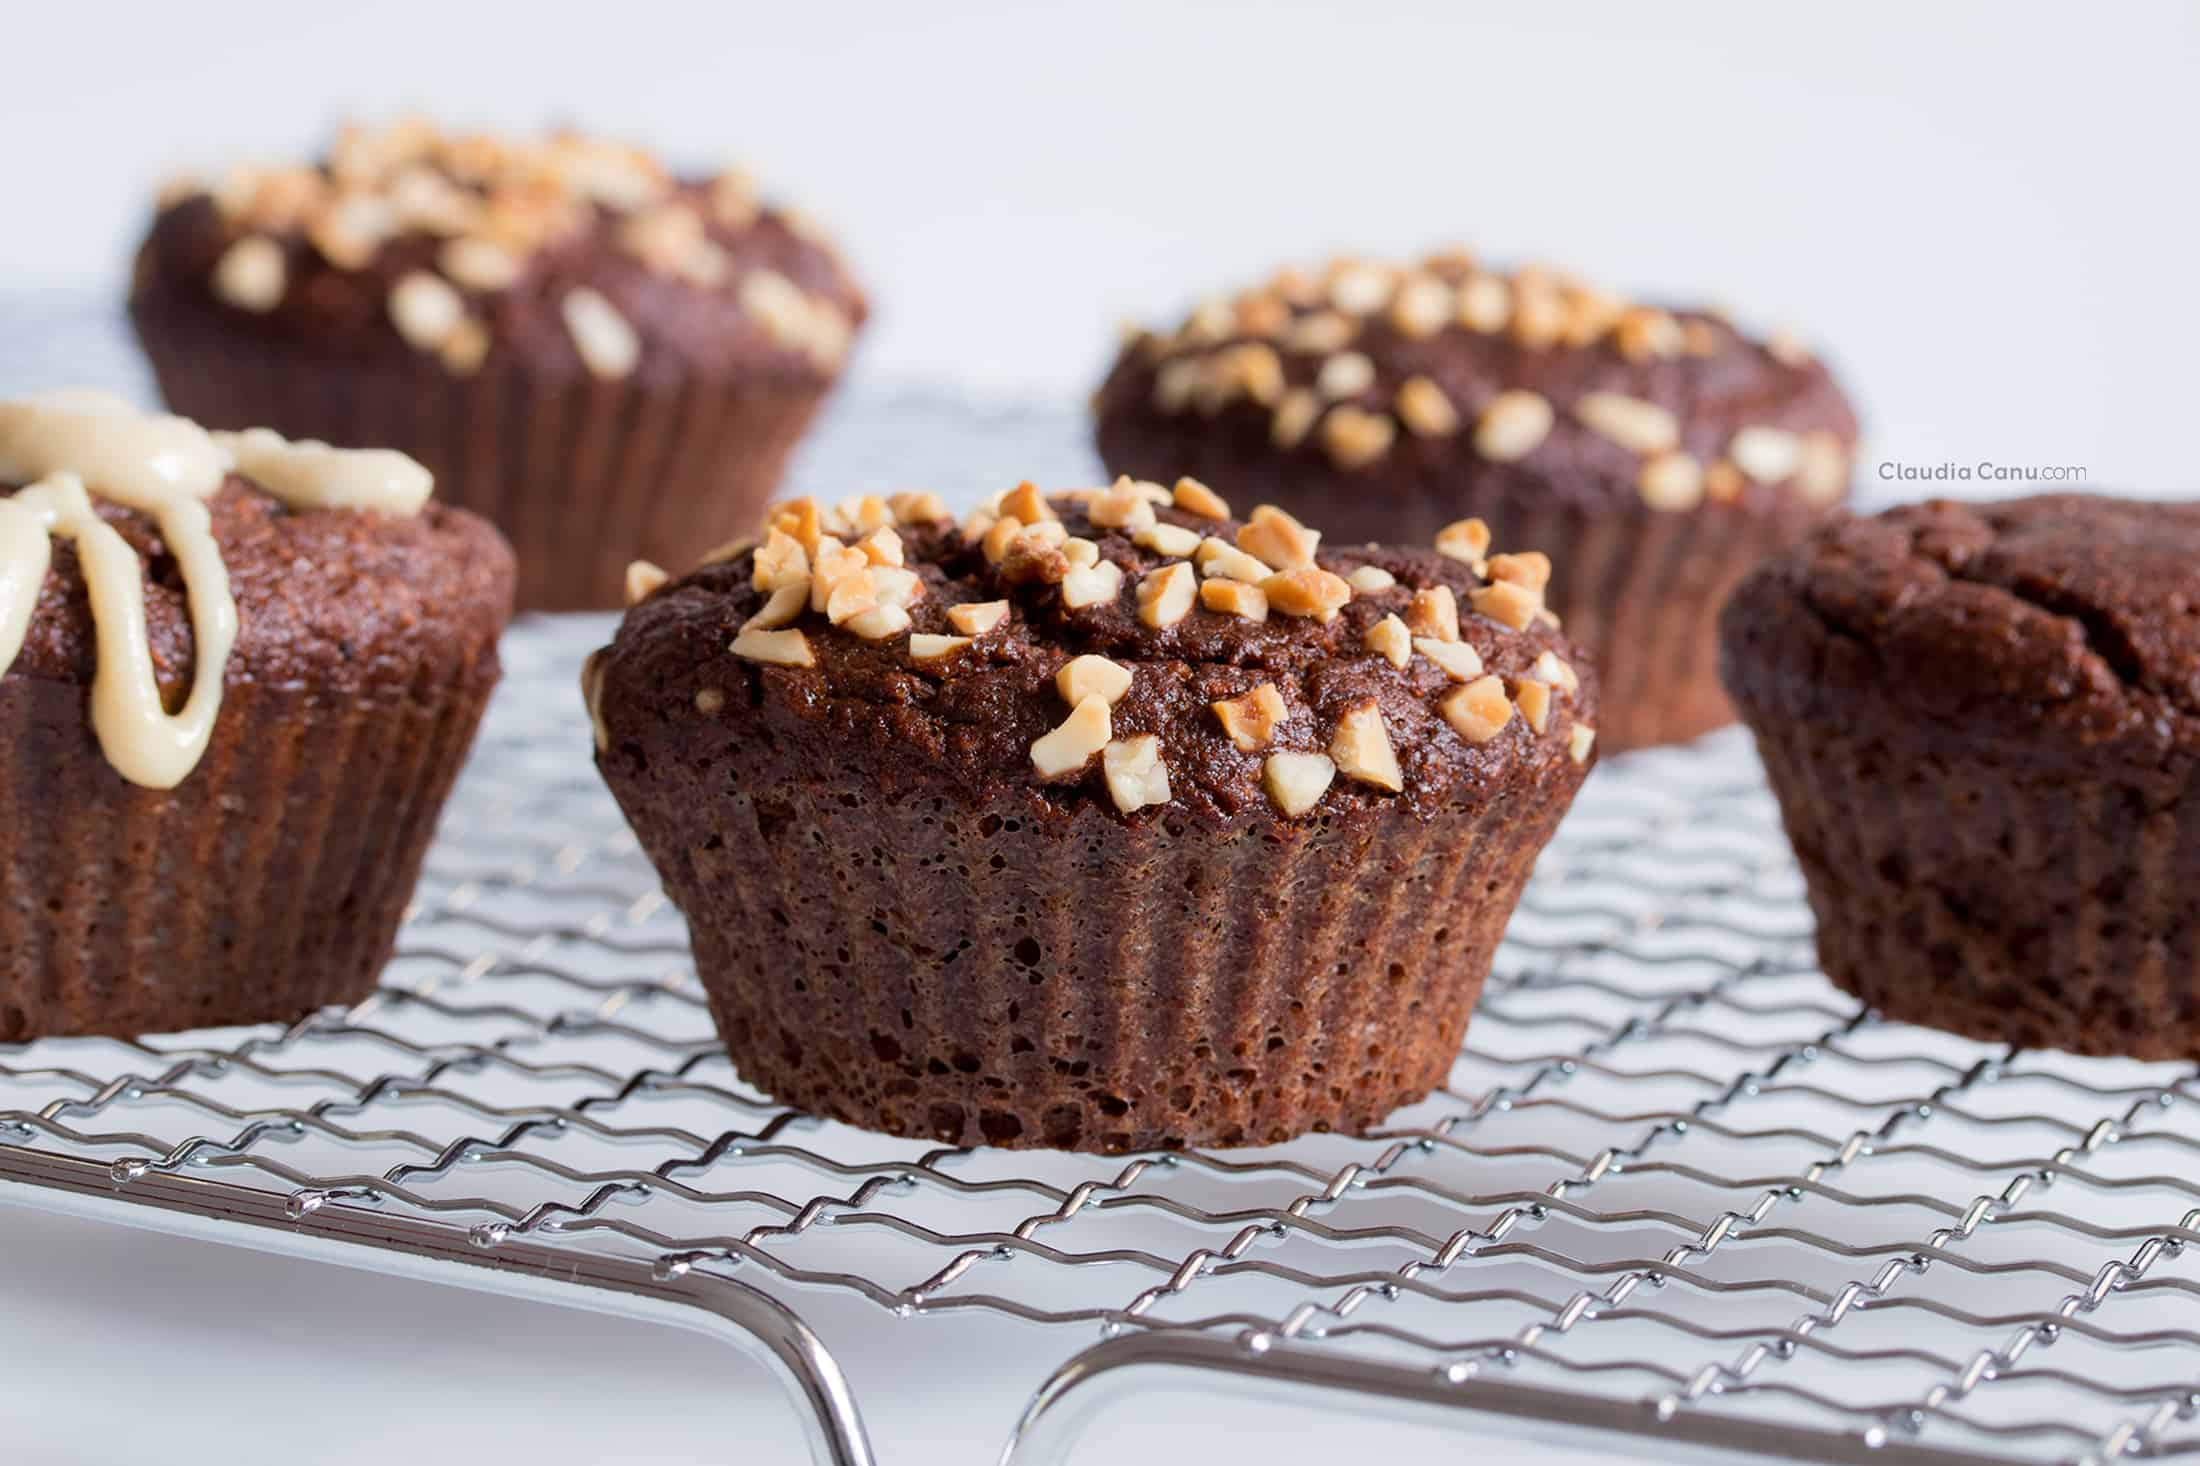 Gluten-free muffins with Chocolate and Carob